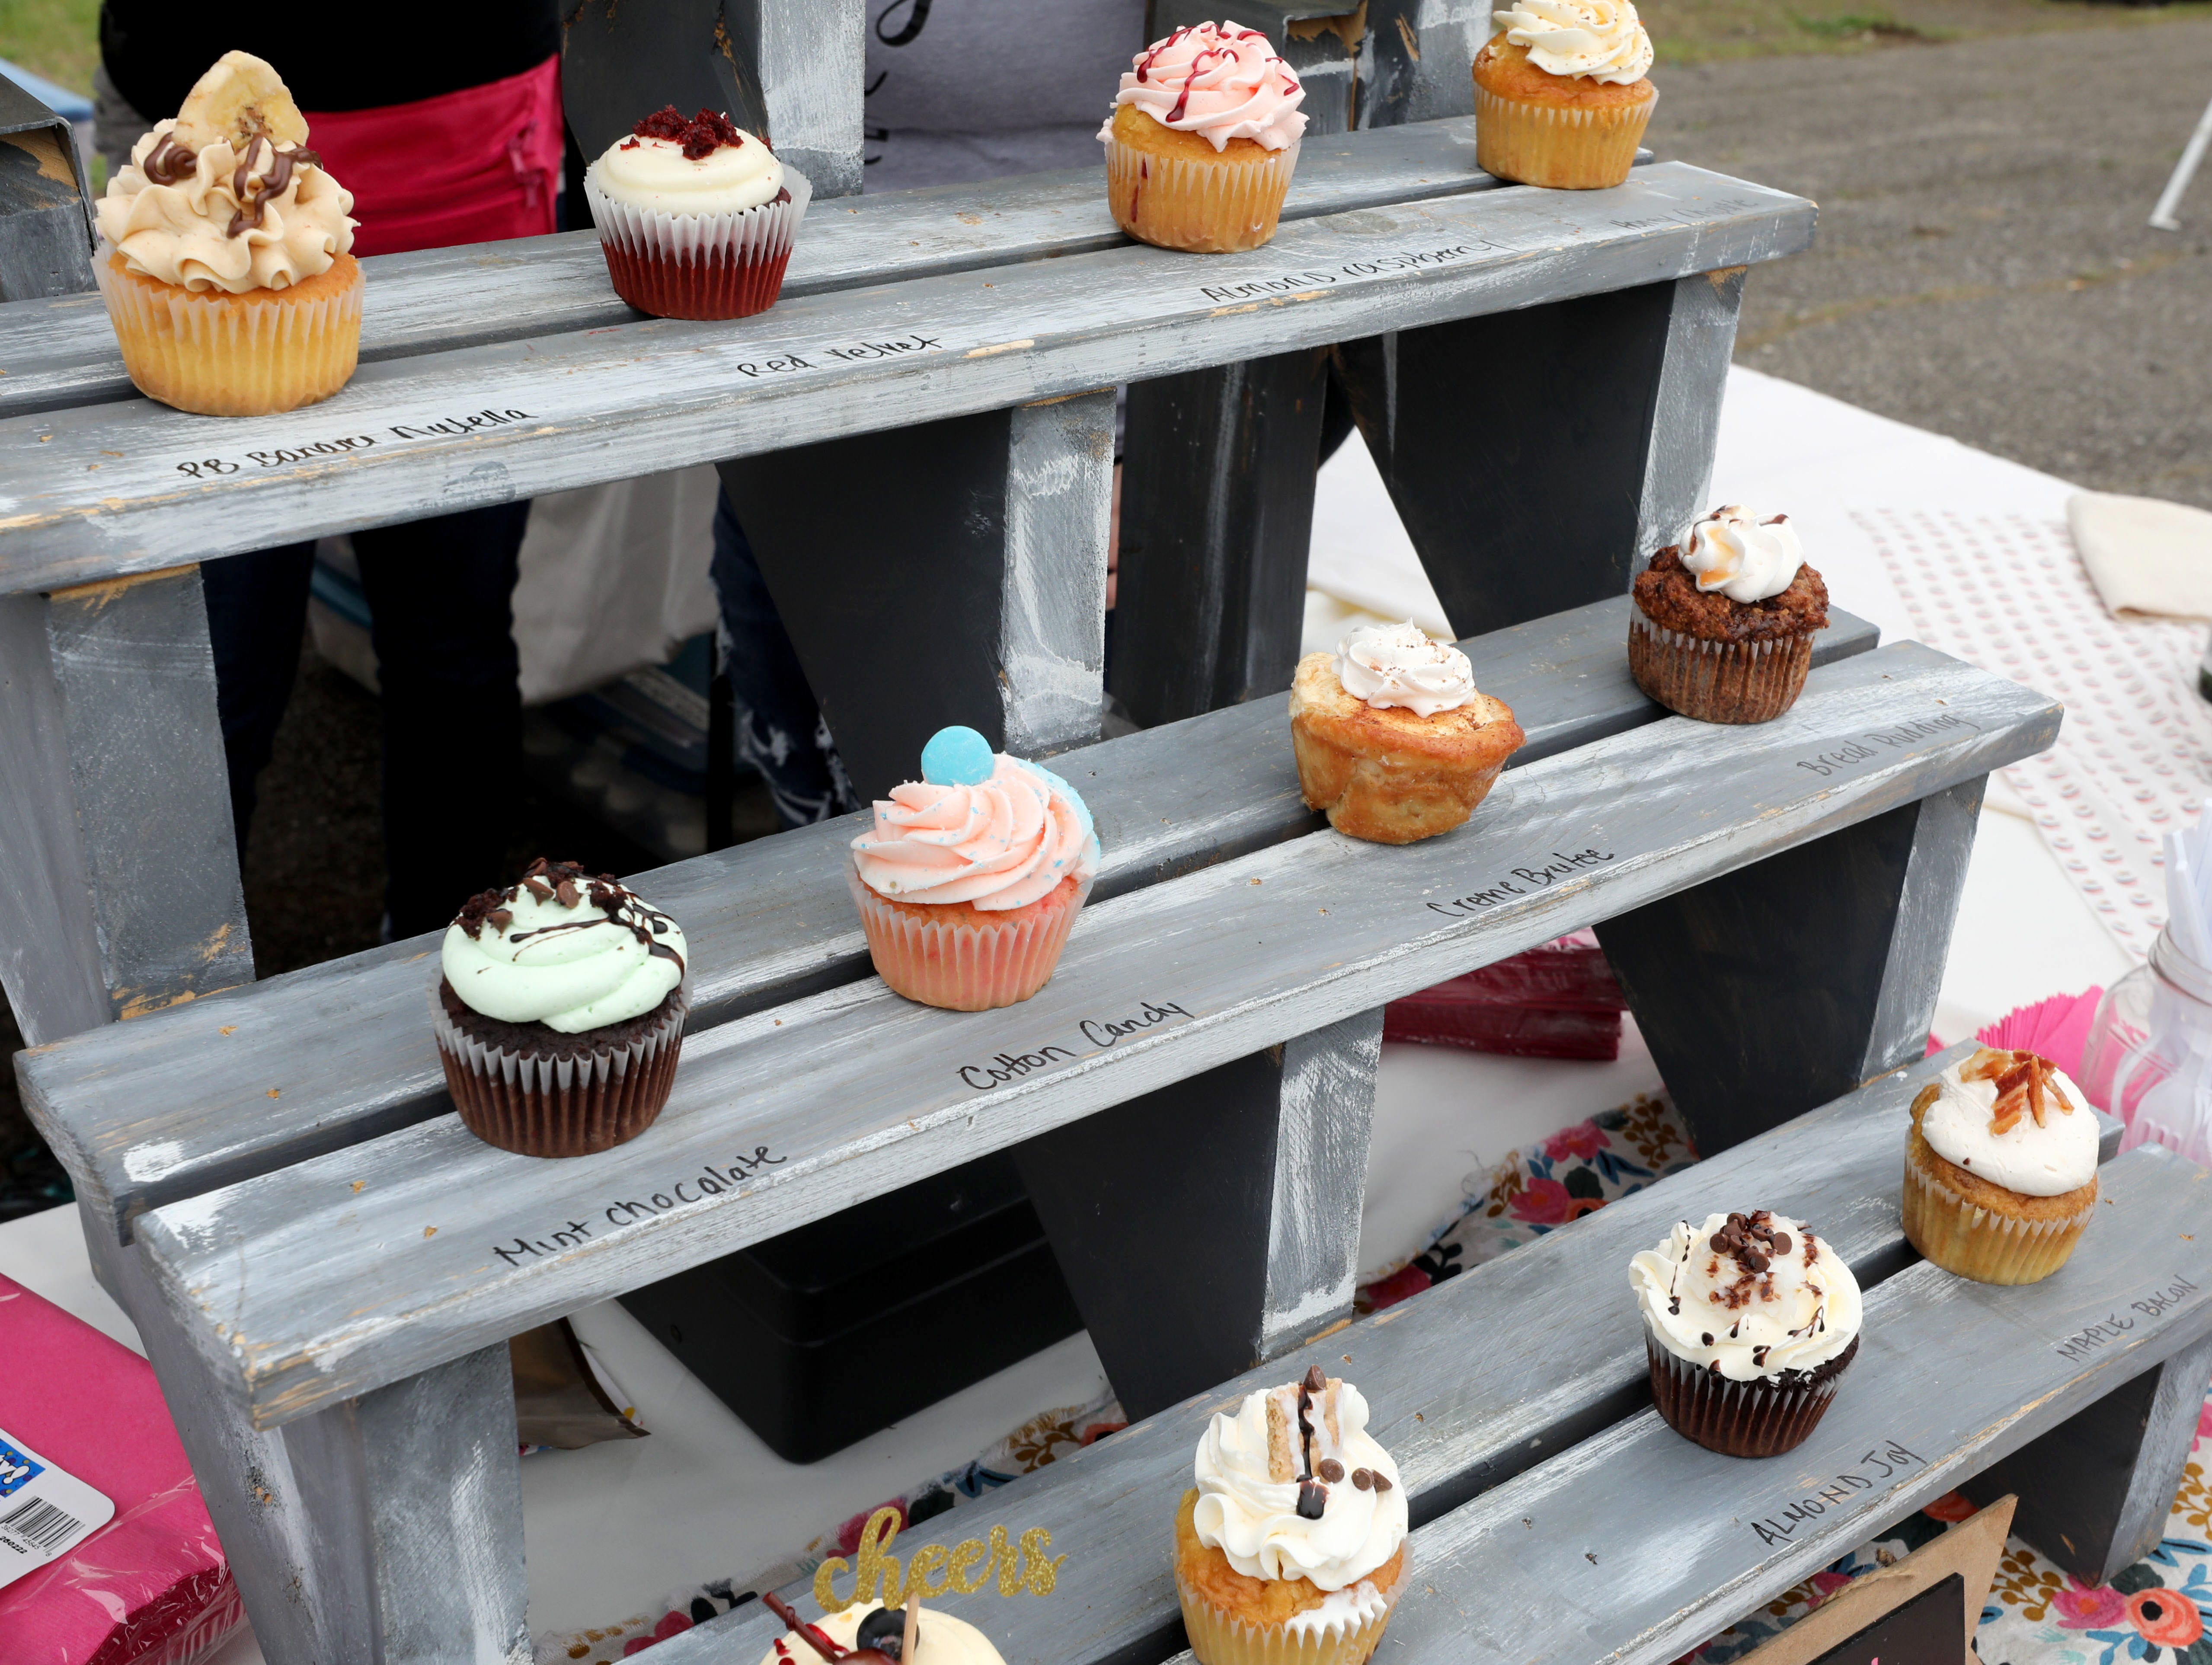 Cupcakes on display from the Eat This Bakery And Gifts booth, during the K104.7 Cupcake Festival at the Stormville Airport, May 4, 2019.